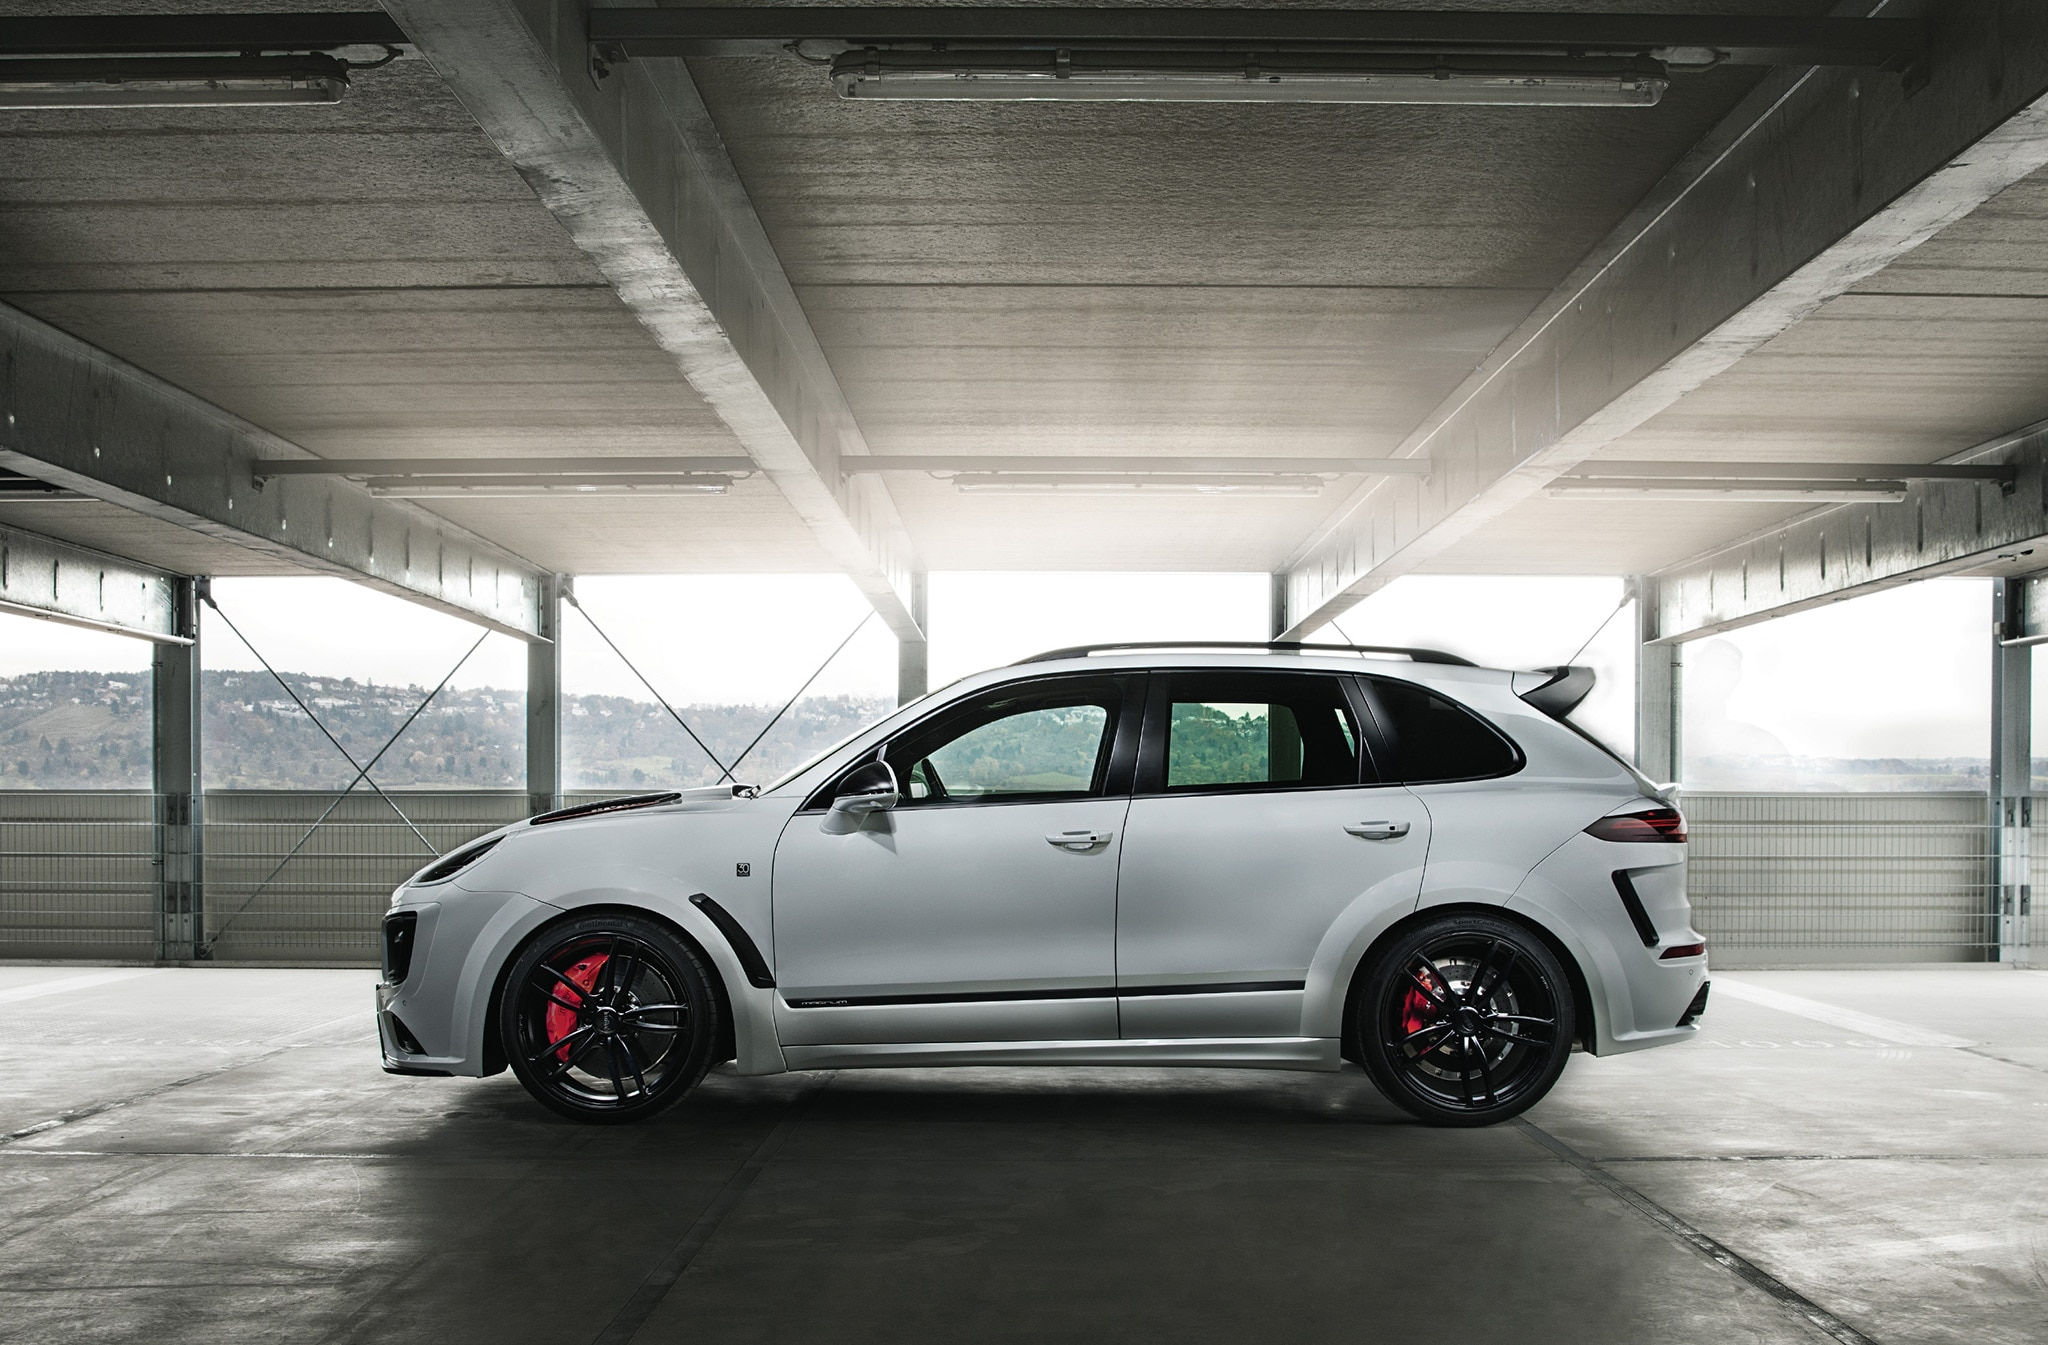 techart s magnum sport porsche cayenne turbo s offers 720 horsepower automobile magazine. Black Bedroom Furniture Sets. Home Design Ideas